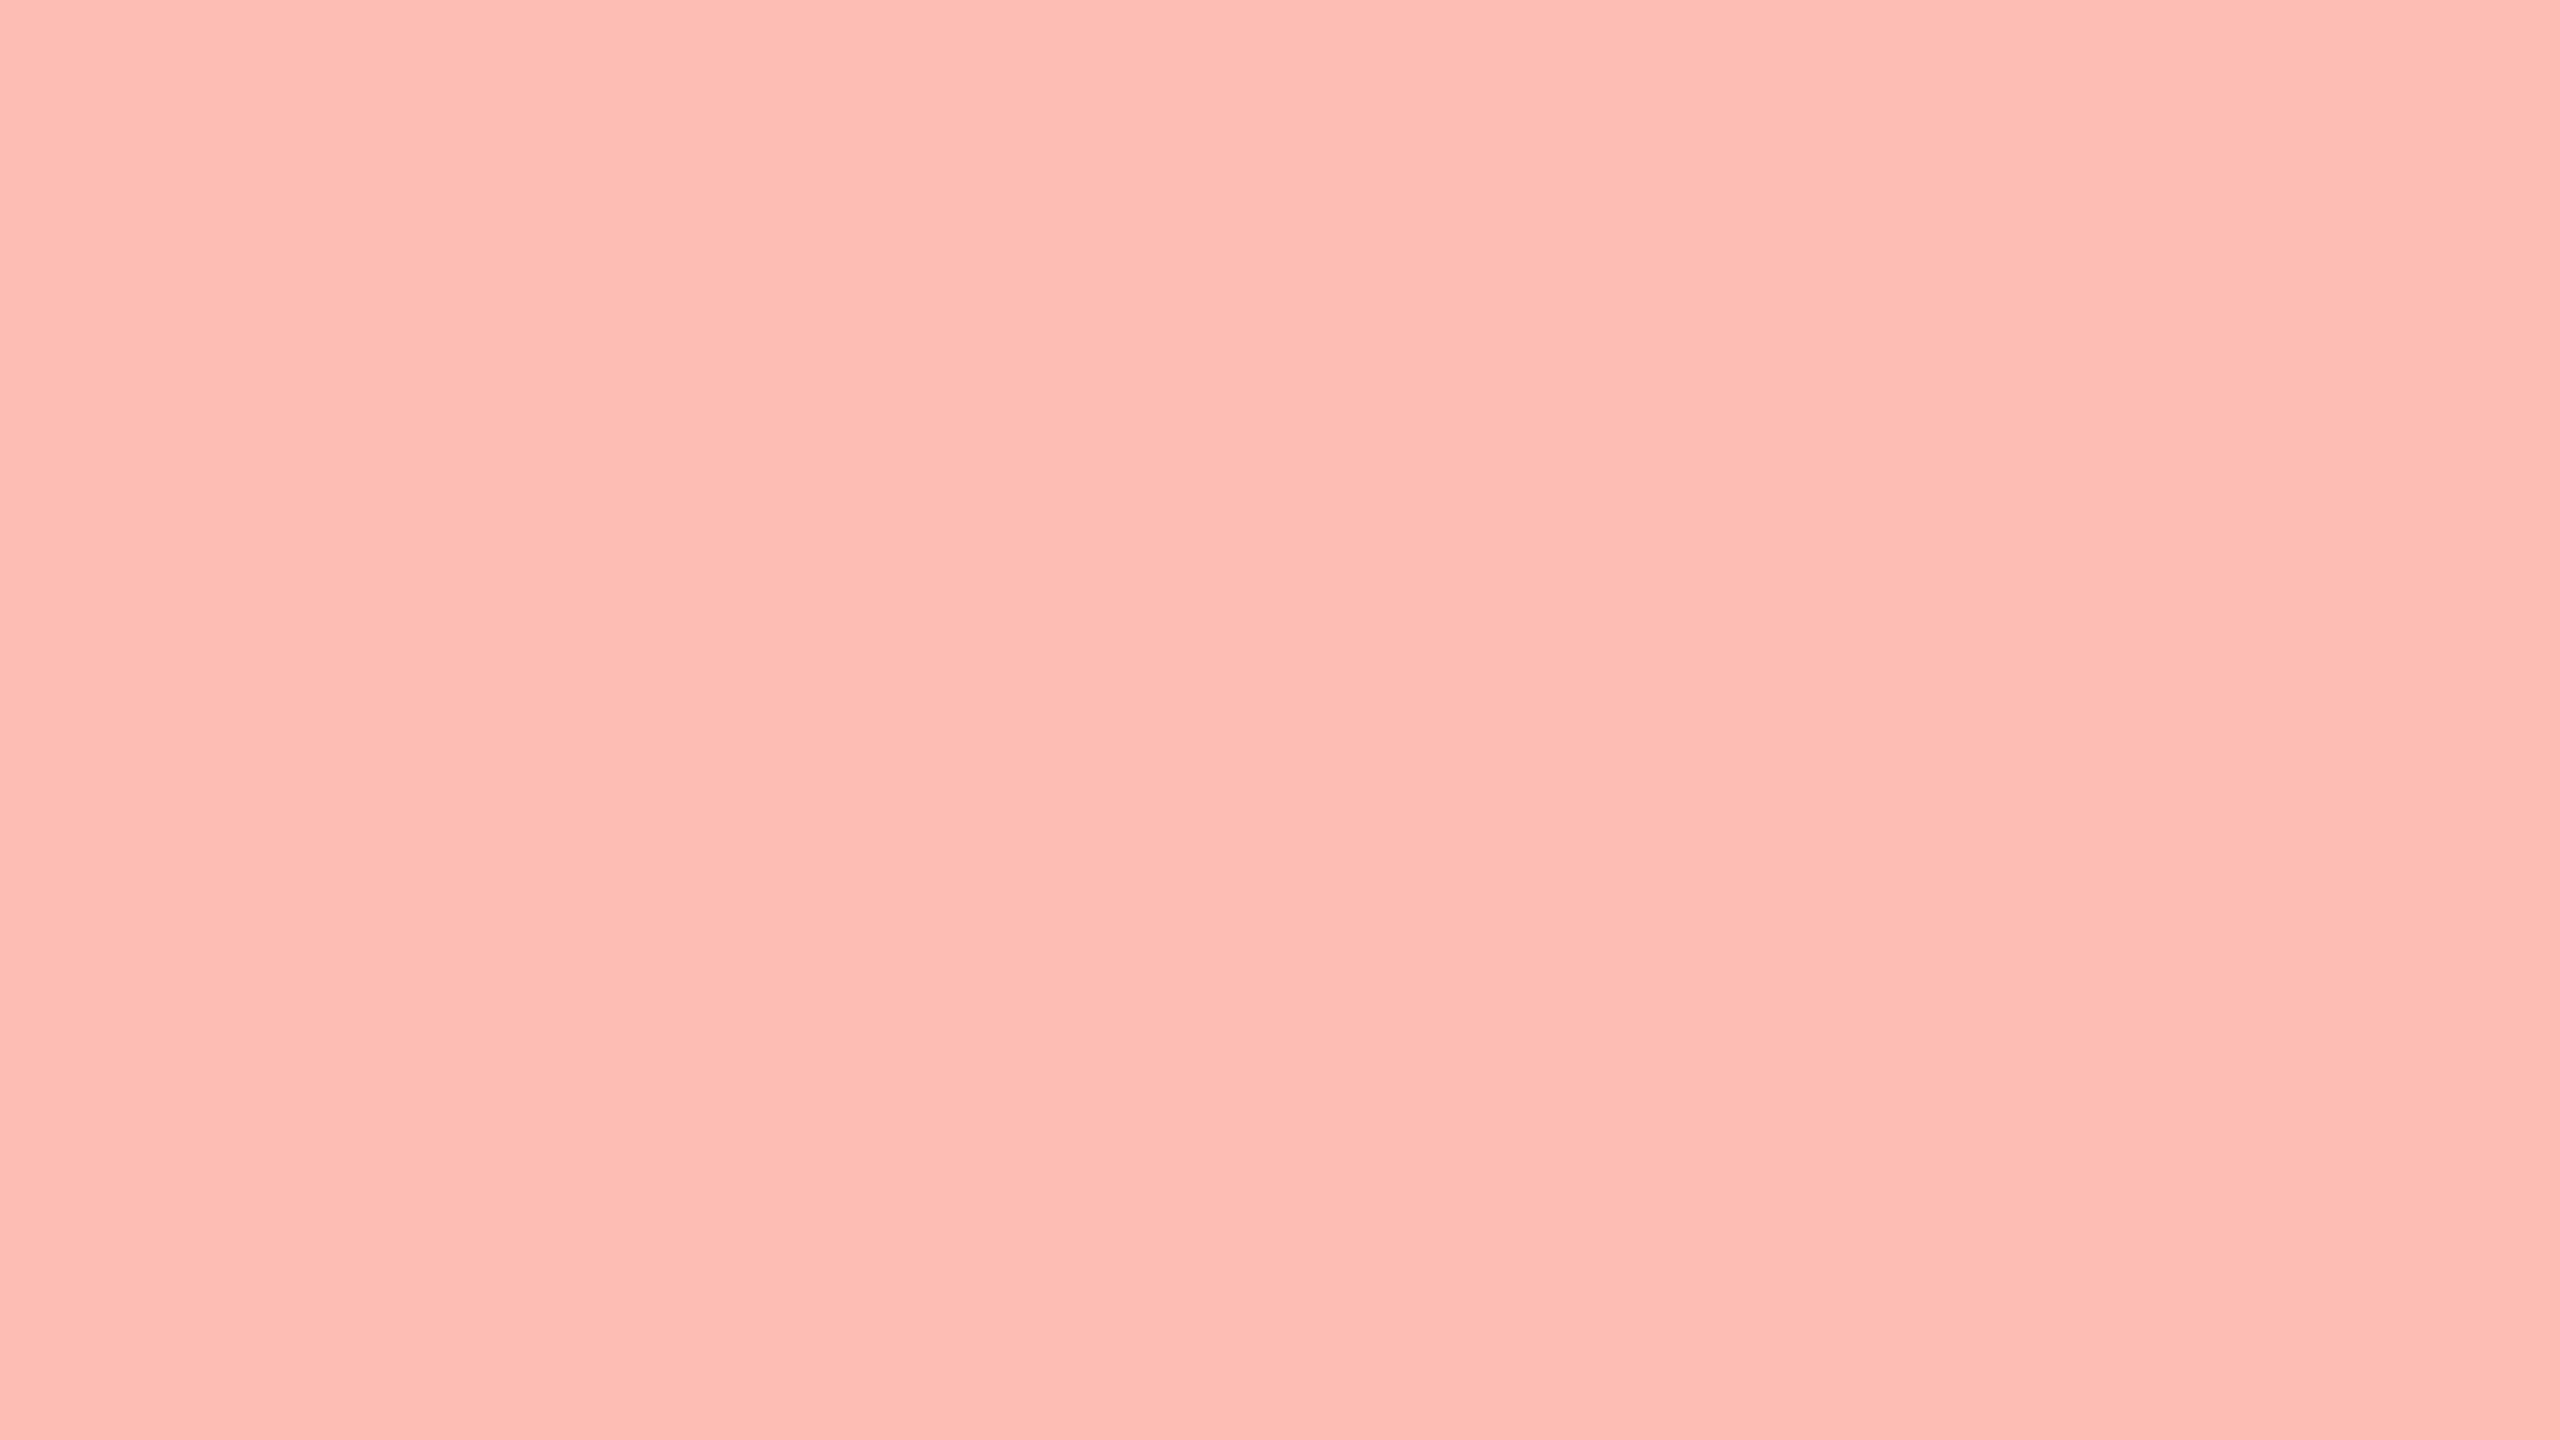 2560x1440 Melon Solid Color Background